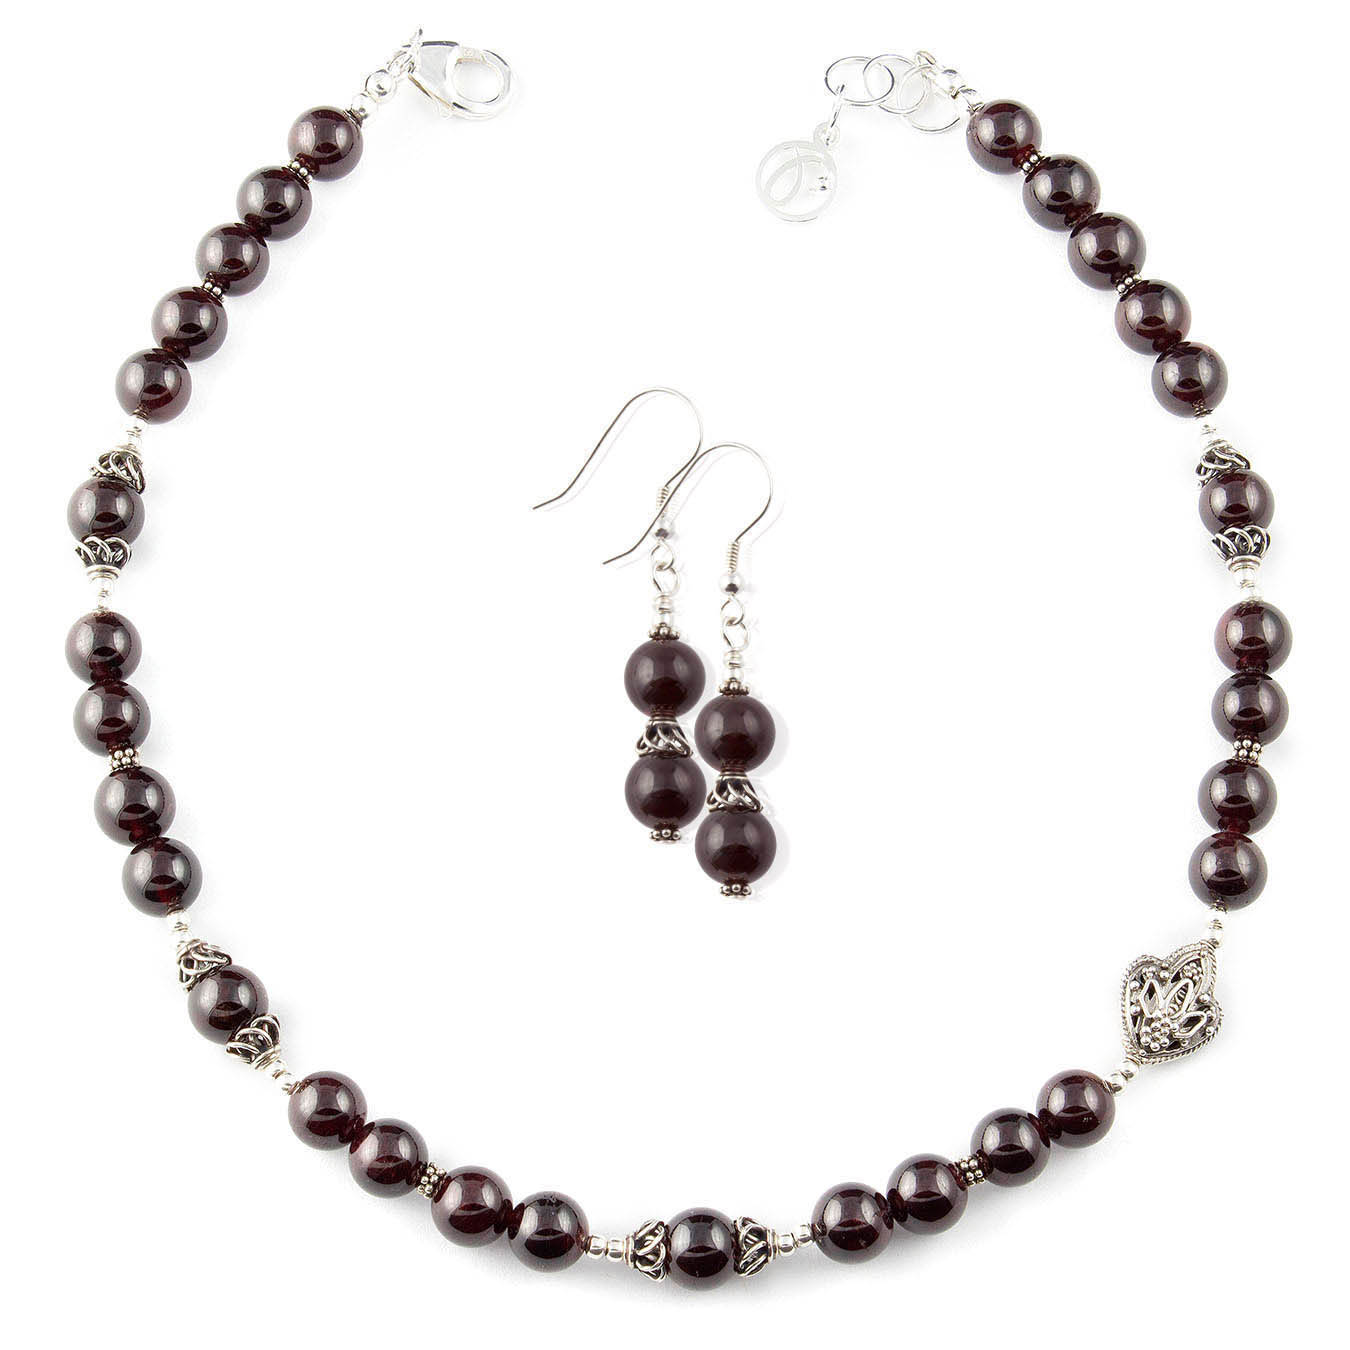 Handcrafted birthstone necklace with garnet and filigree bali silver